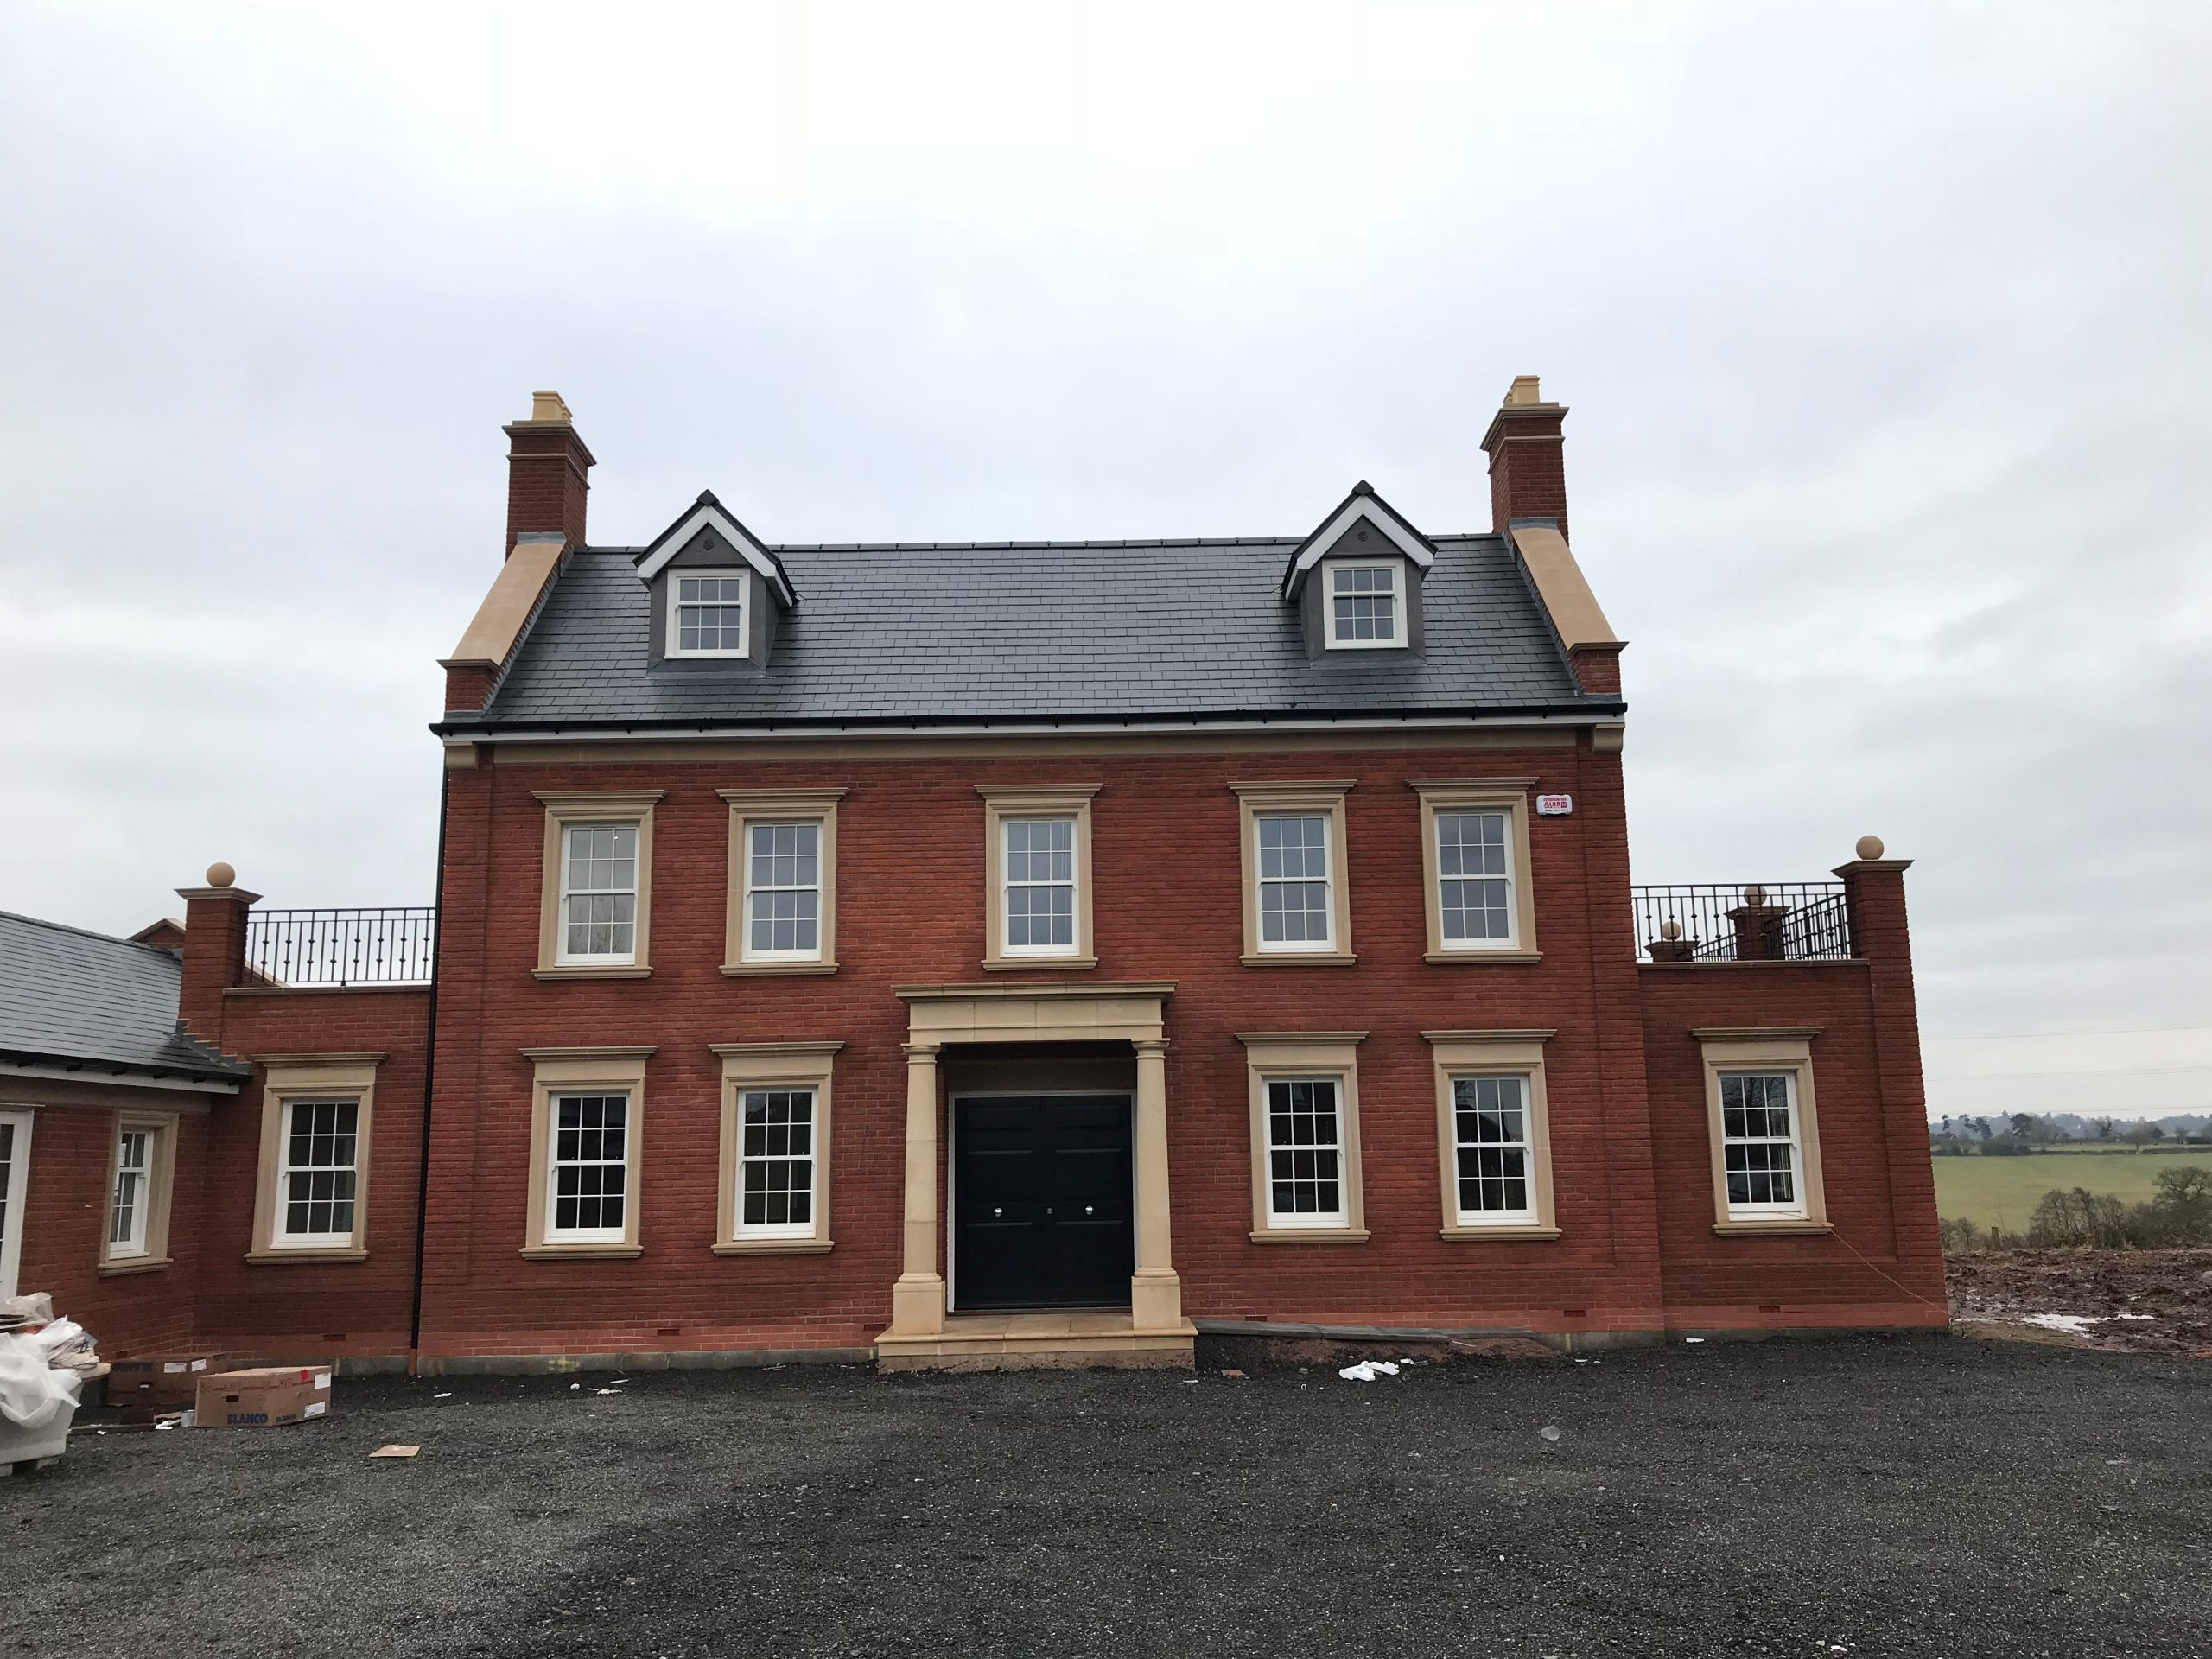 Astley House with Amber Valley Stone